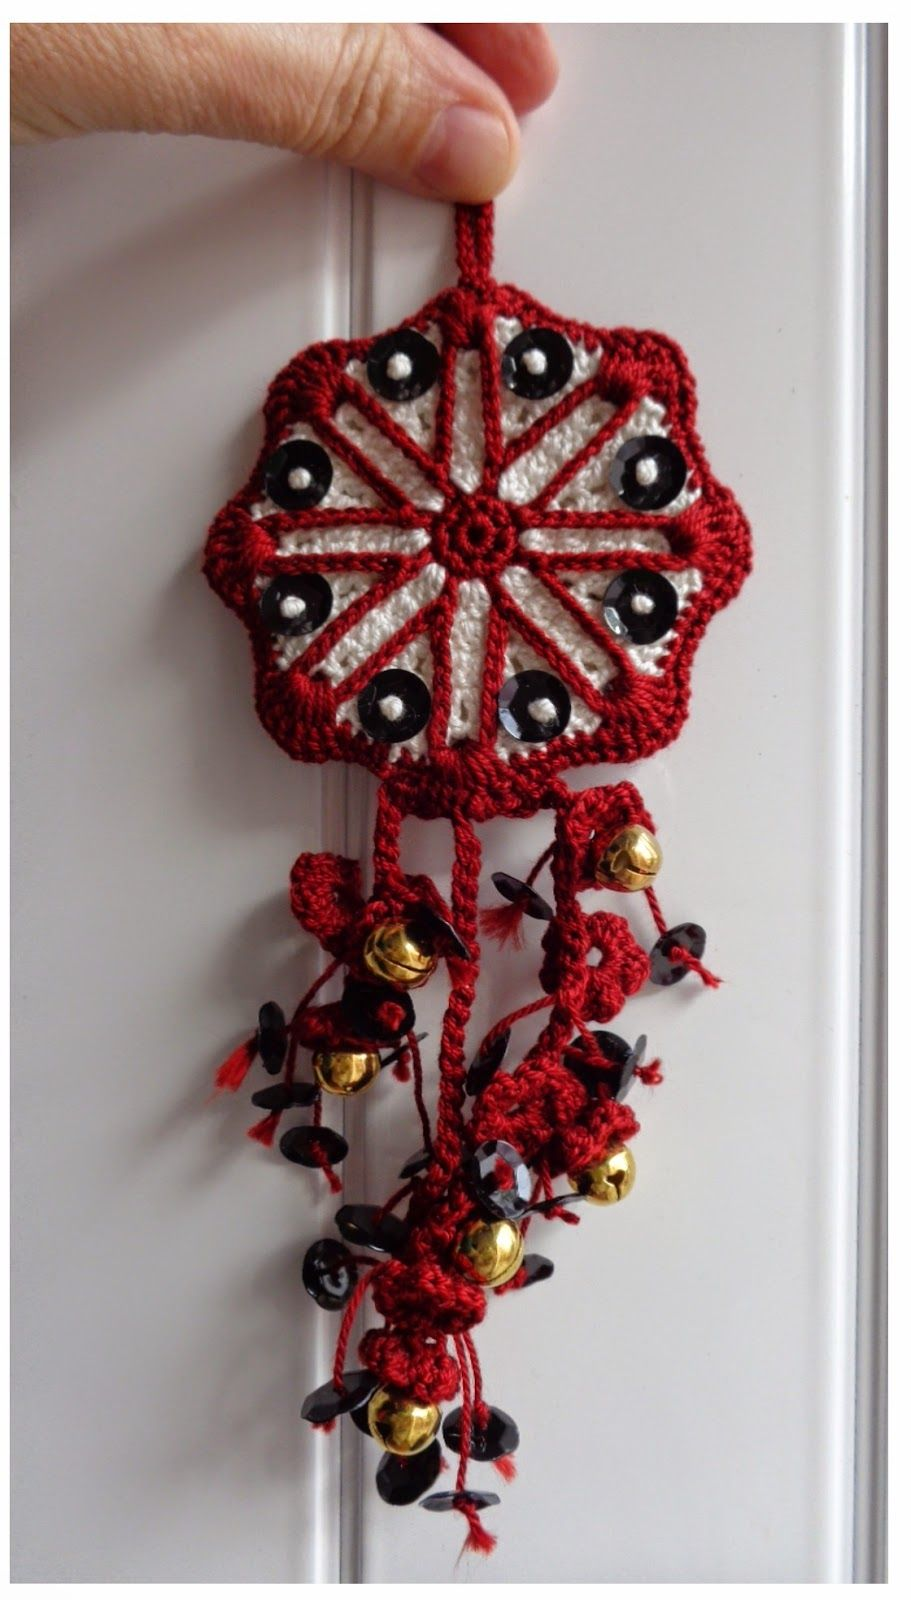 crochet door chime red black white, flowers and sequins